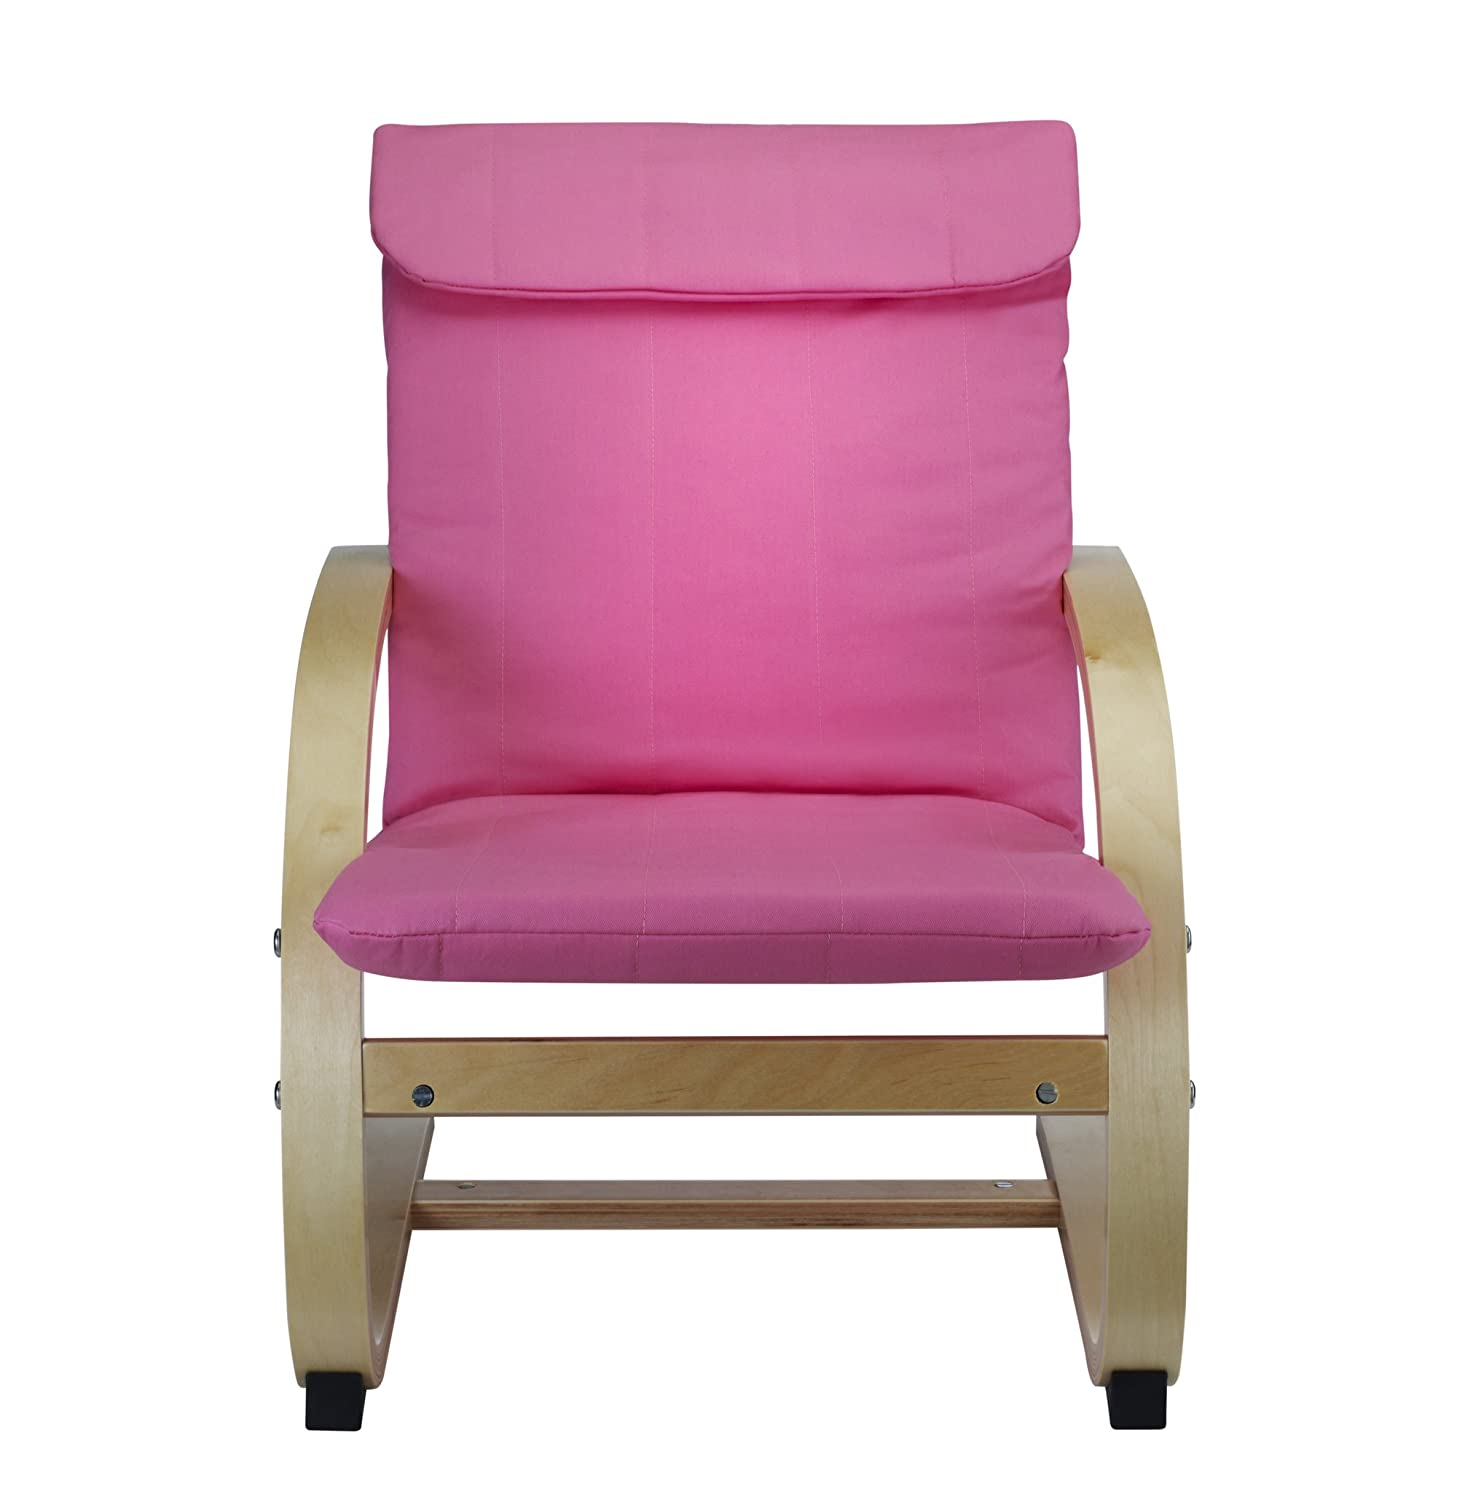 Kids Lounge Chair in Pink Bentwood Childrens Chair Amazon